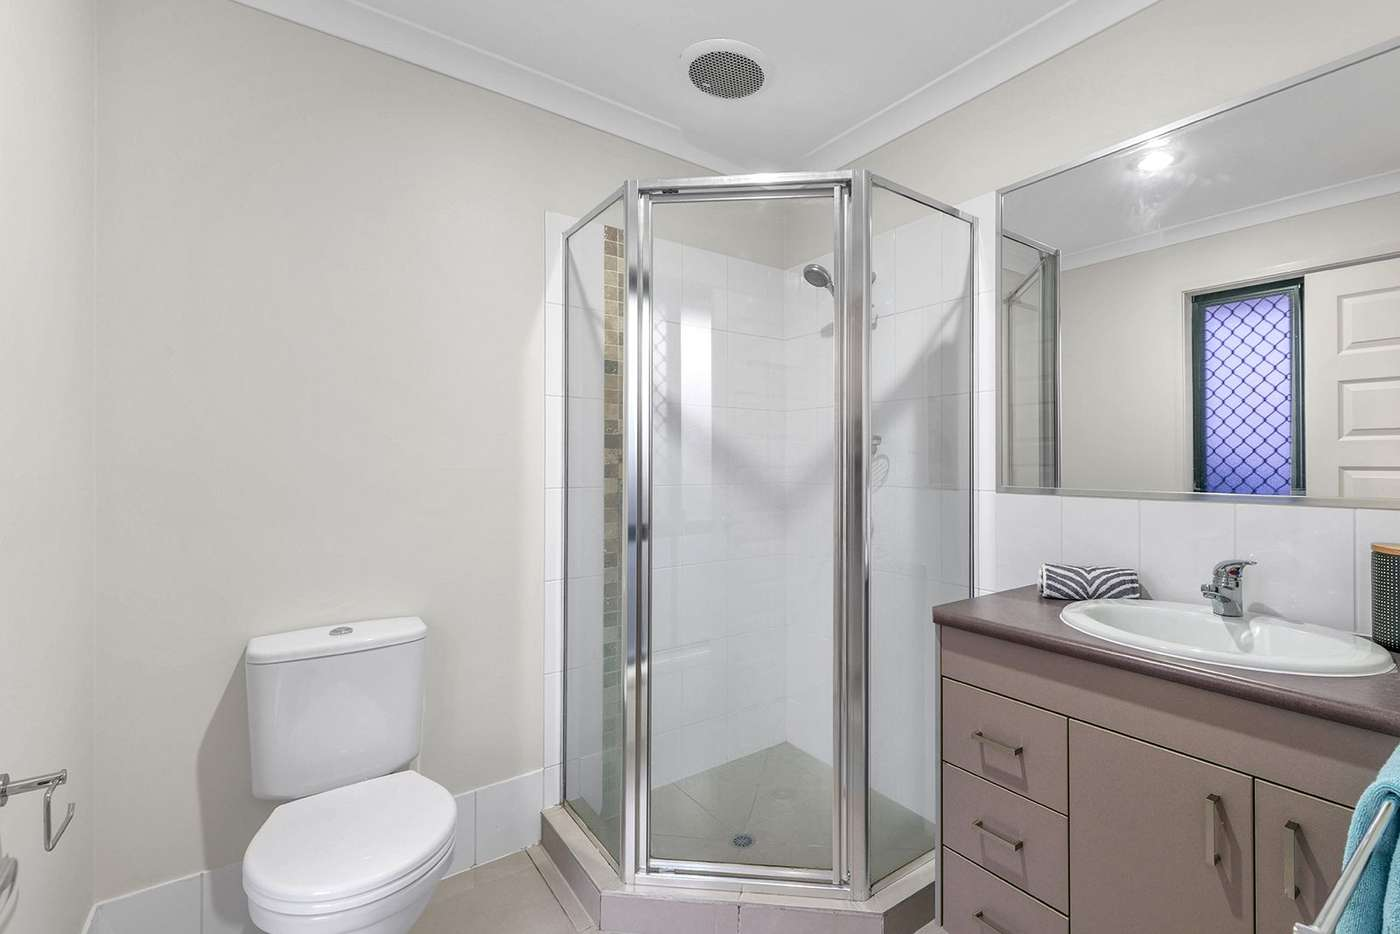 Seventh view of Homely house listing, 9 Duncan Crescent, Joyner QLD 4500